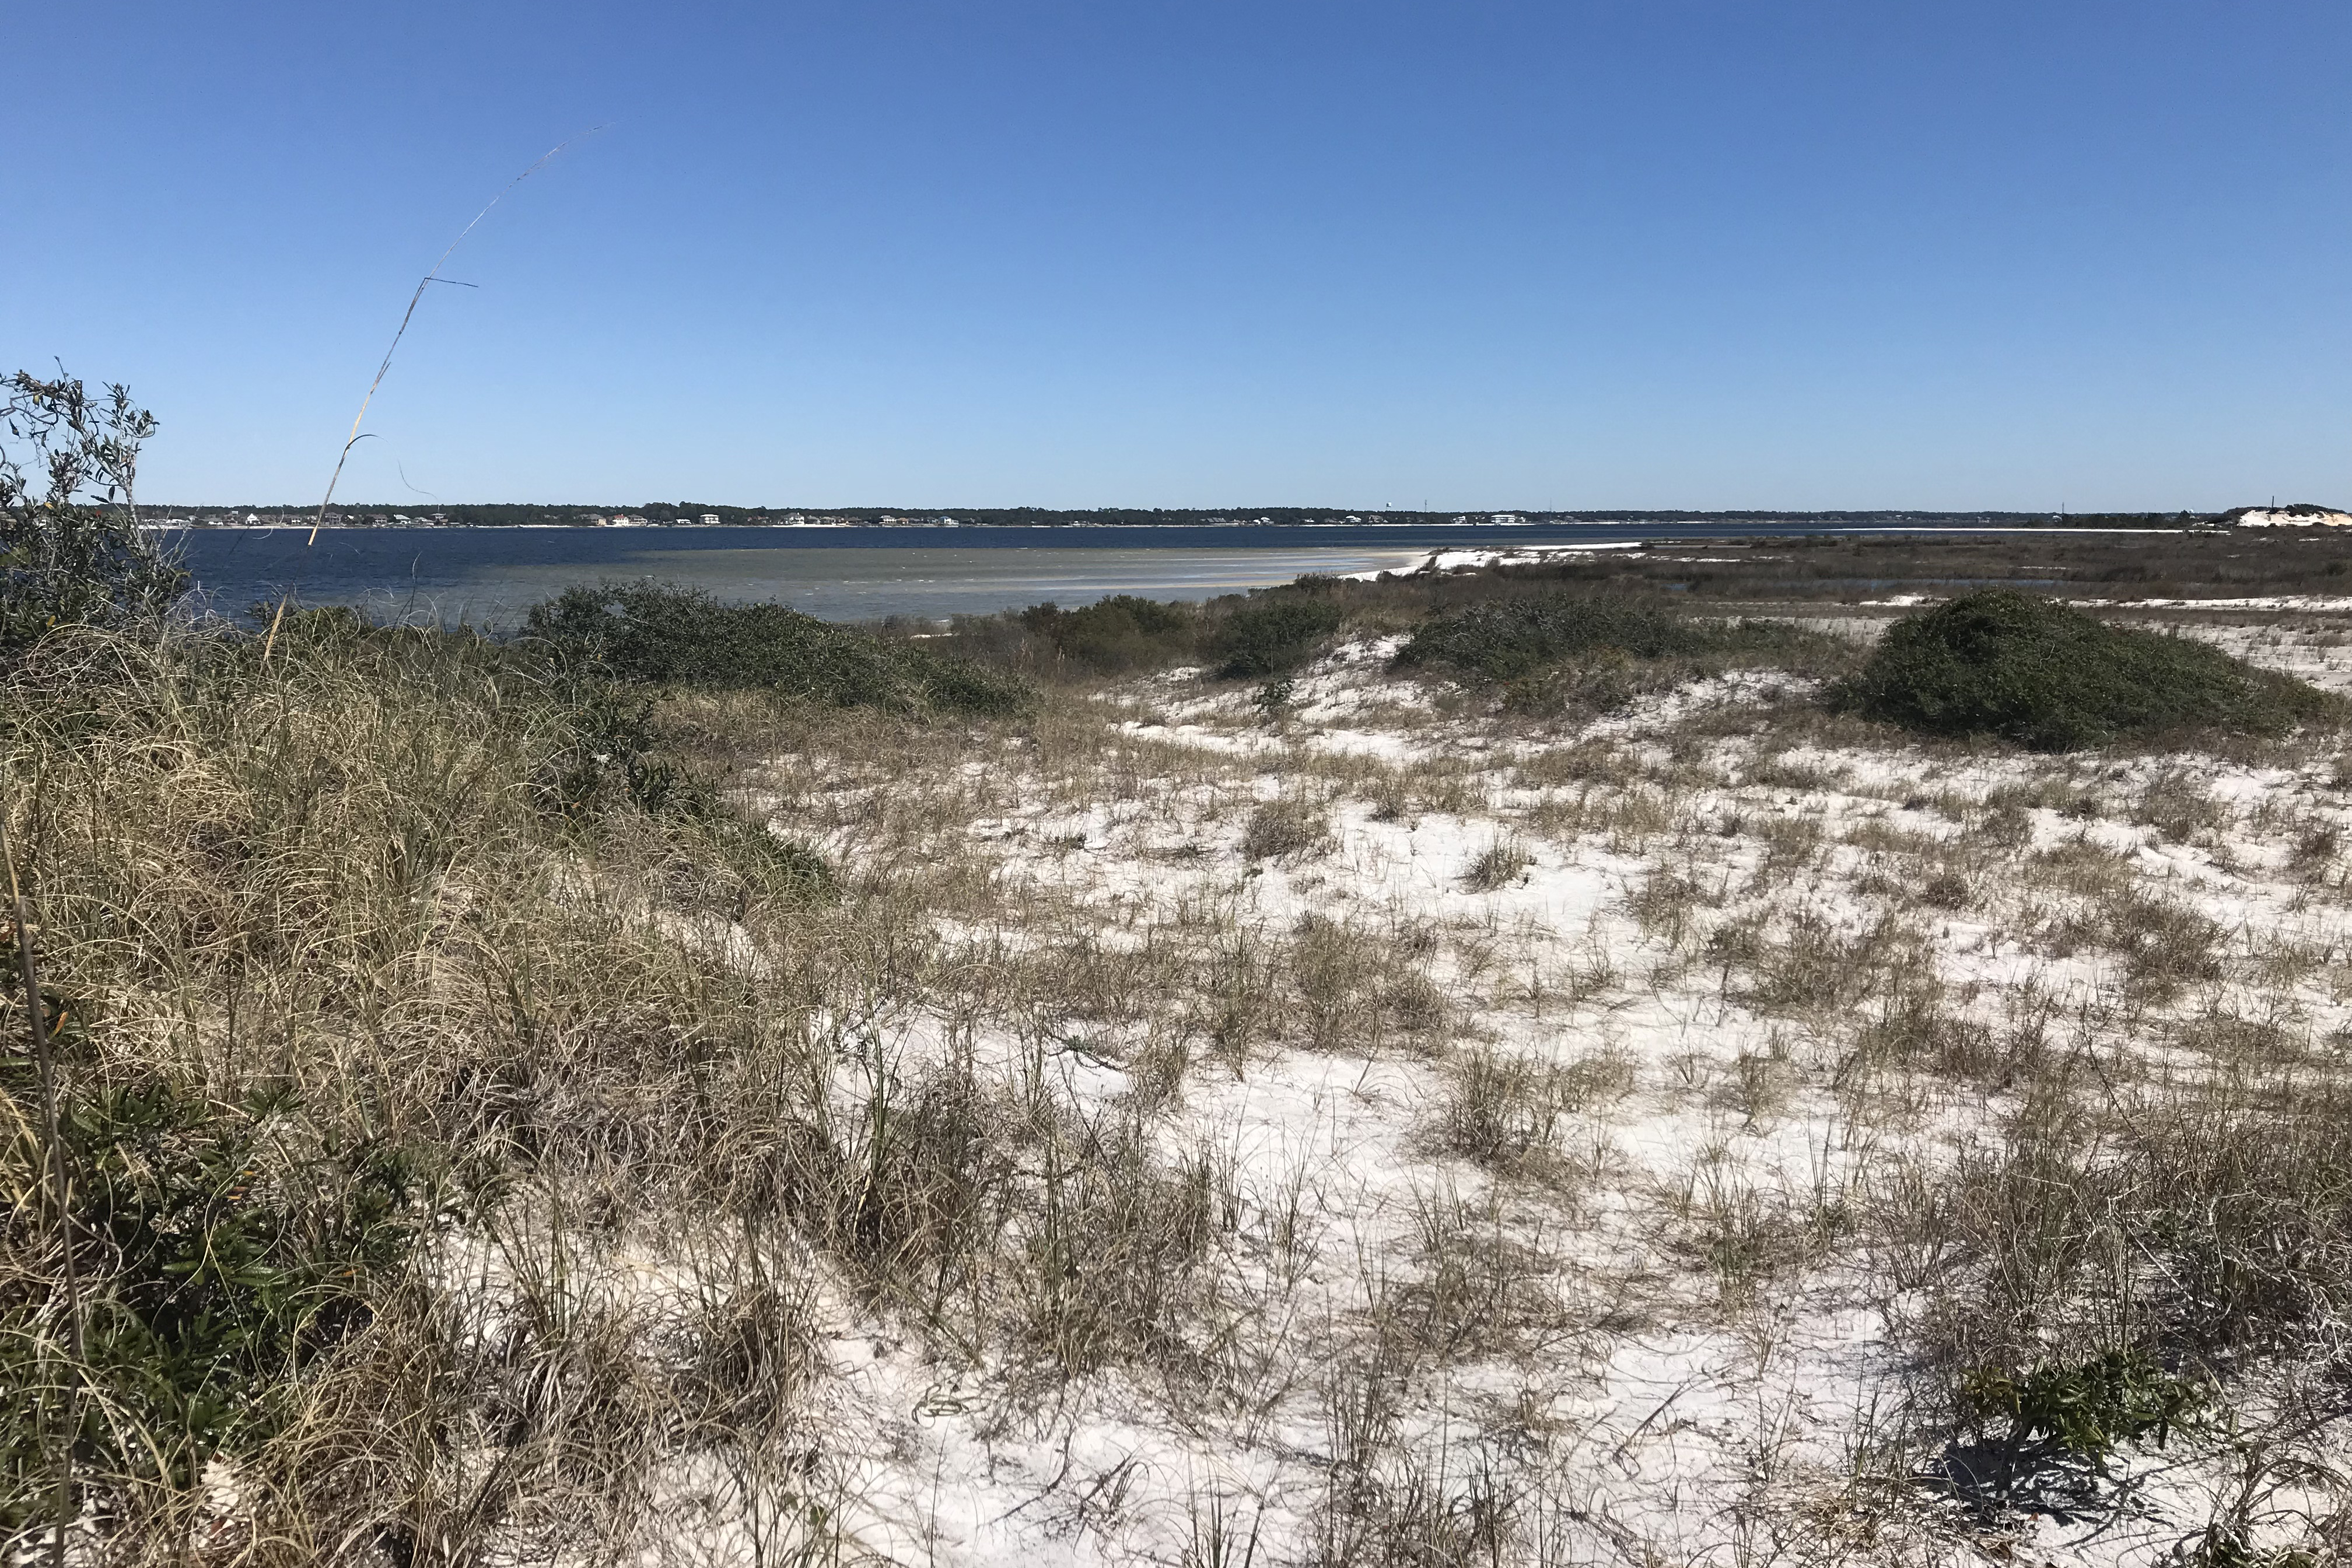 Dunes and vegetation on a Florida beach, looking out into the Gulf of Mexico.